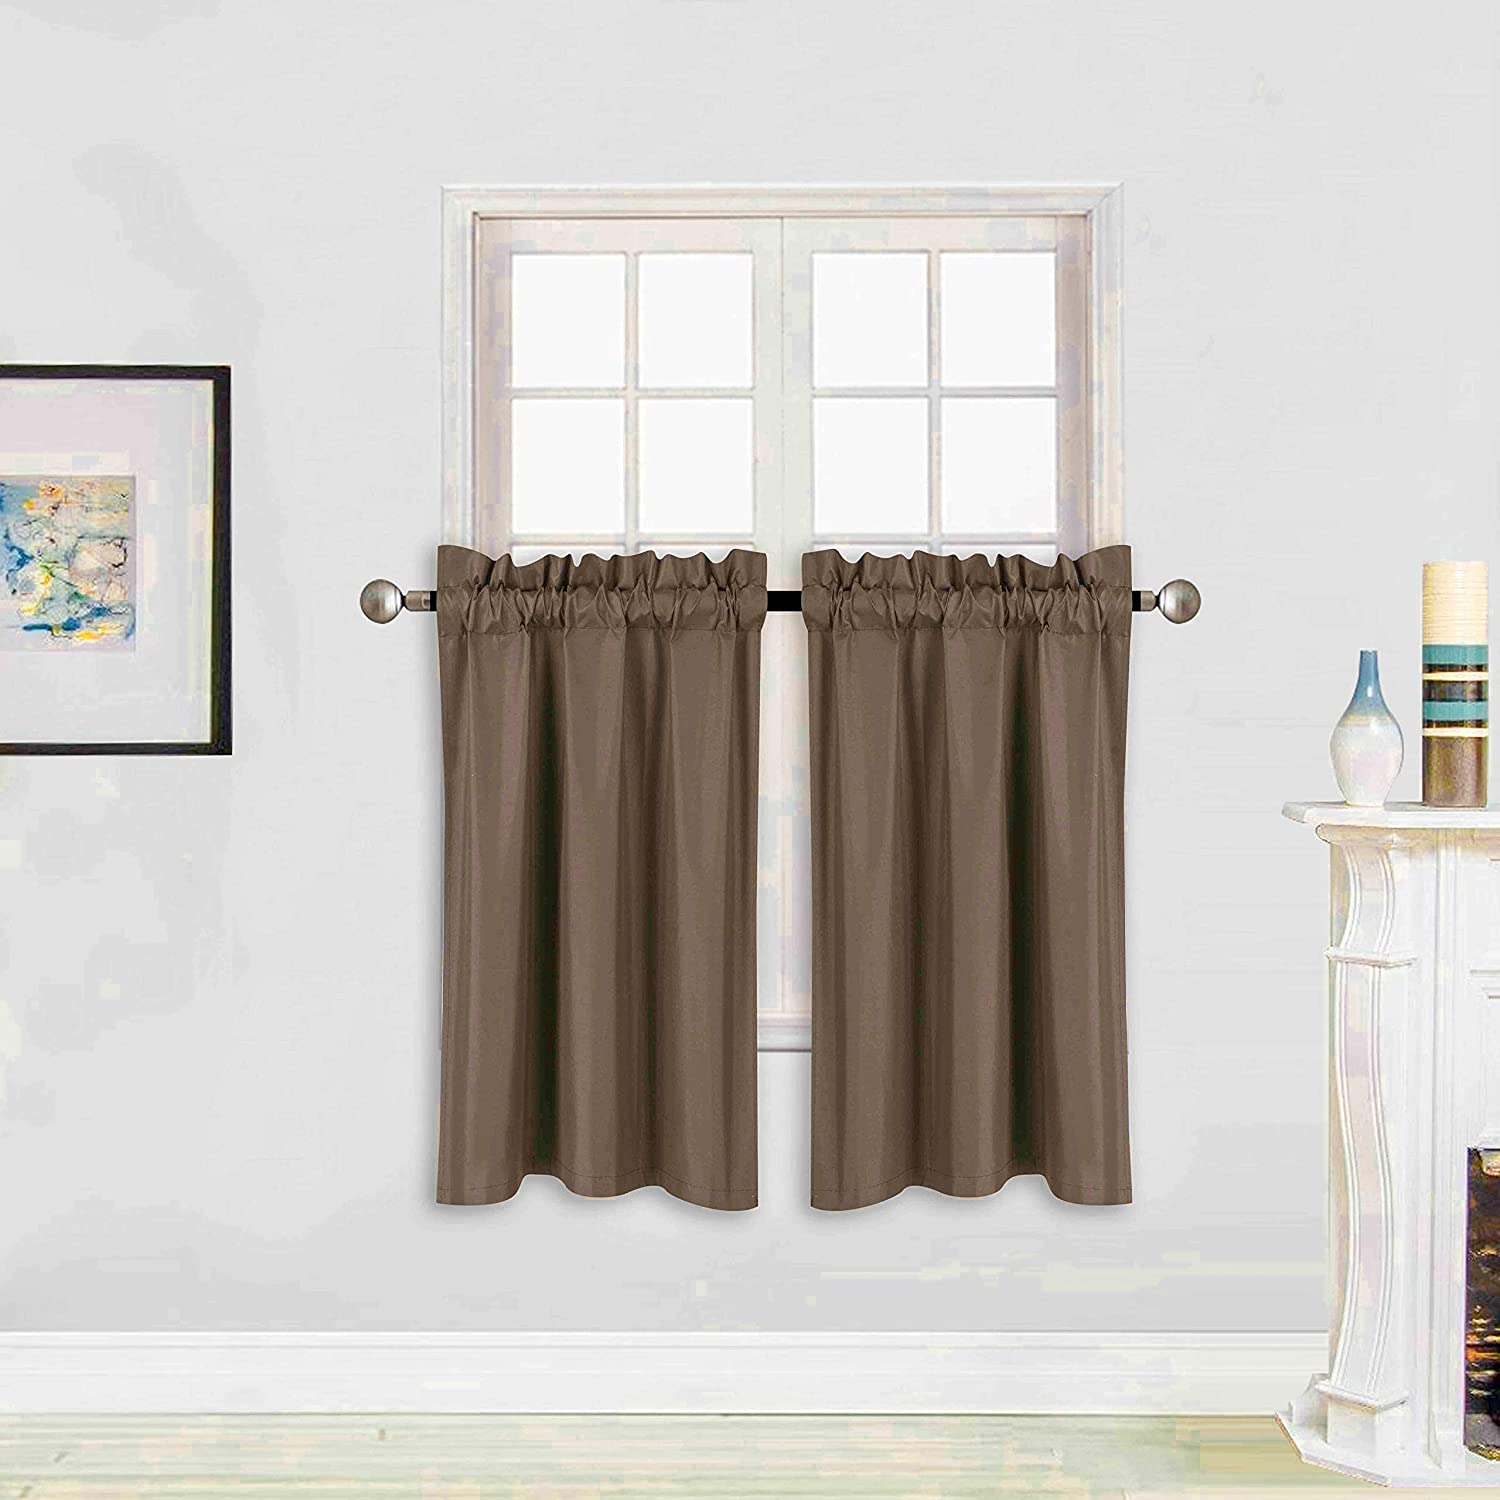 "Better Home Style 100% Blackout 2 Panels Tiers Window Treatment Curtain Insulated Drapes Short Panels for Kitchen Bathroom or Any Small Window M3036 (Brown/Coffee, 2 Panels 28"" W X 36"" L Each)"